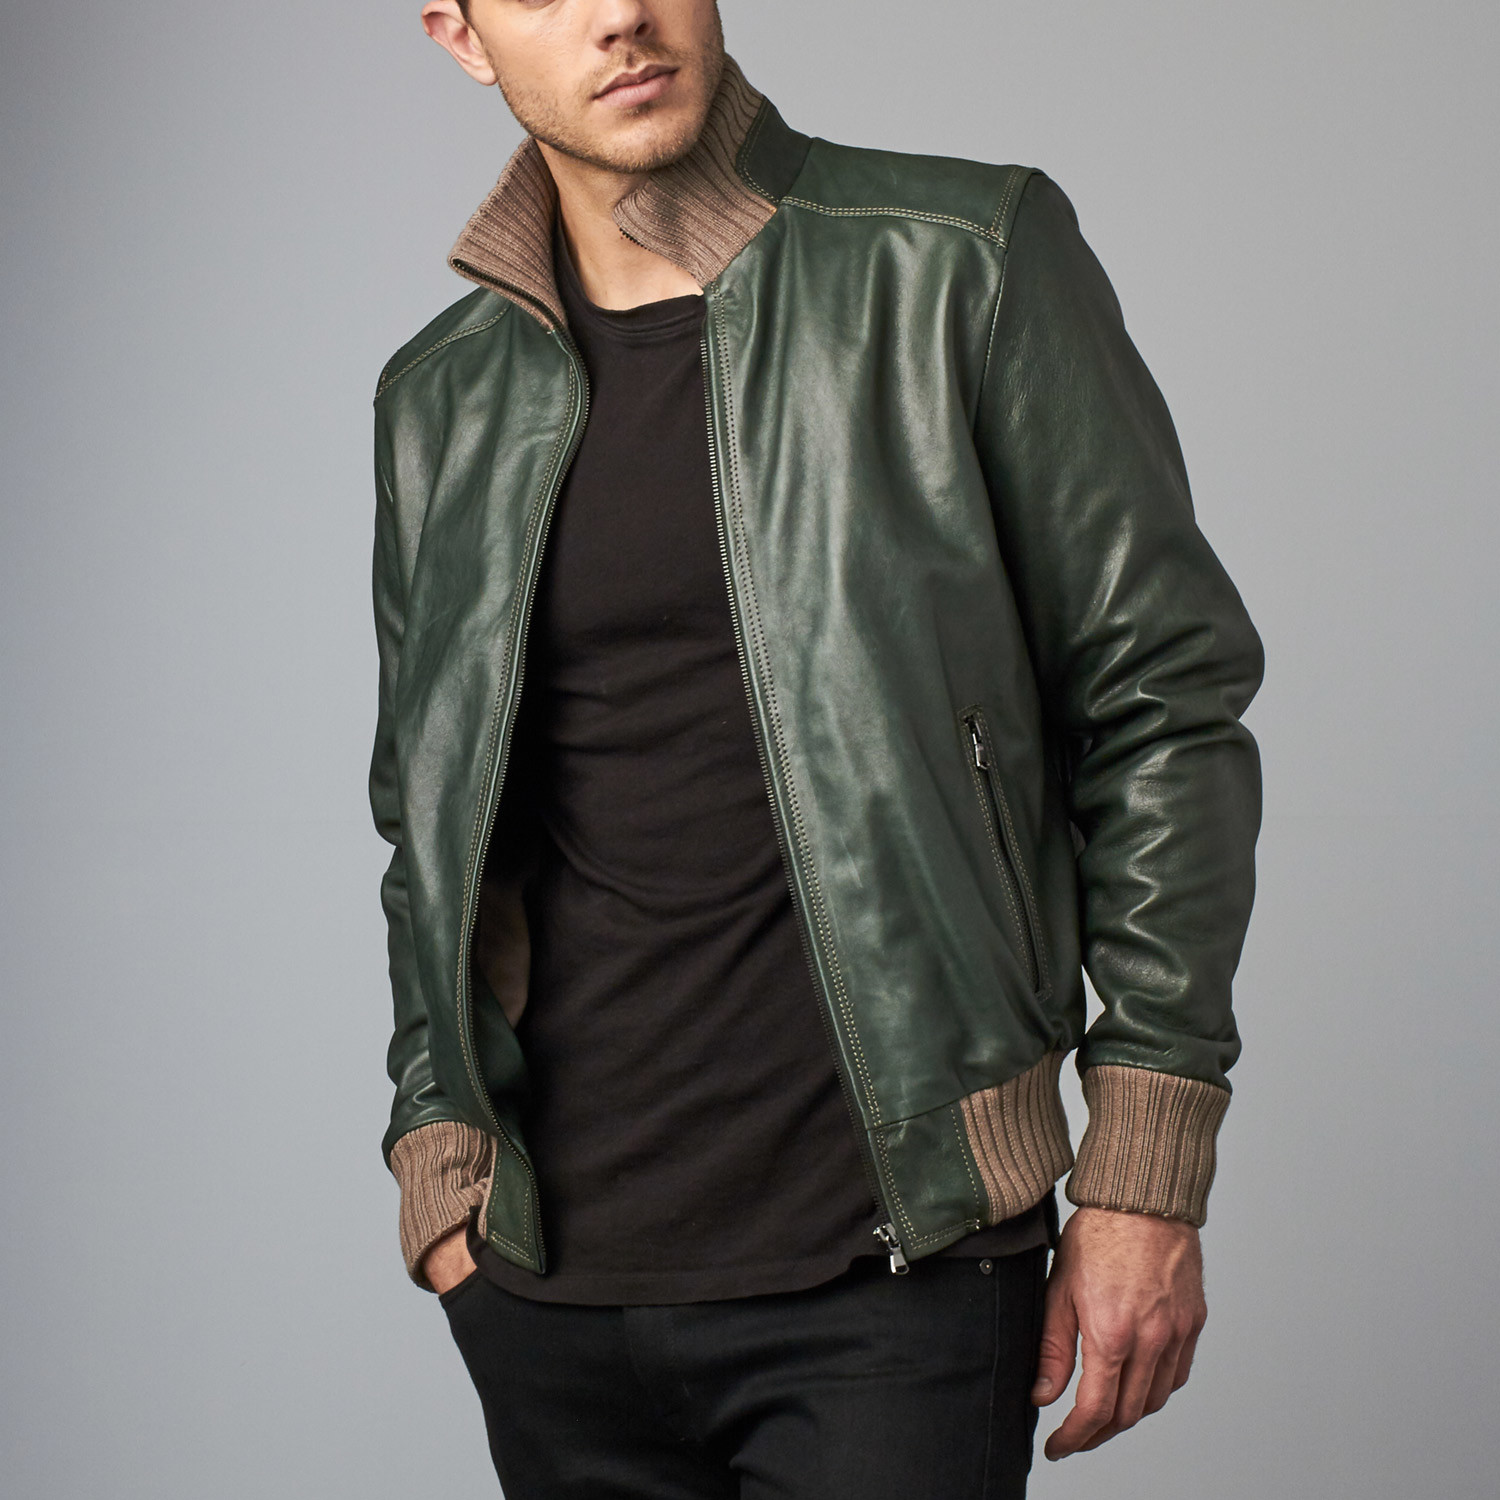 c4b7216ab 107 Leather Bomber Jacket // Green (Euro: 46) - AD Milano - Touch of ...